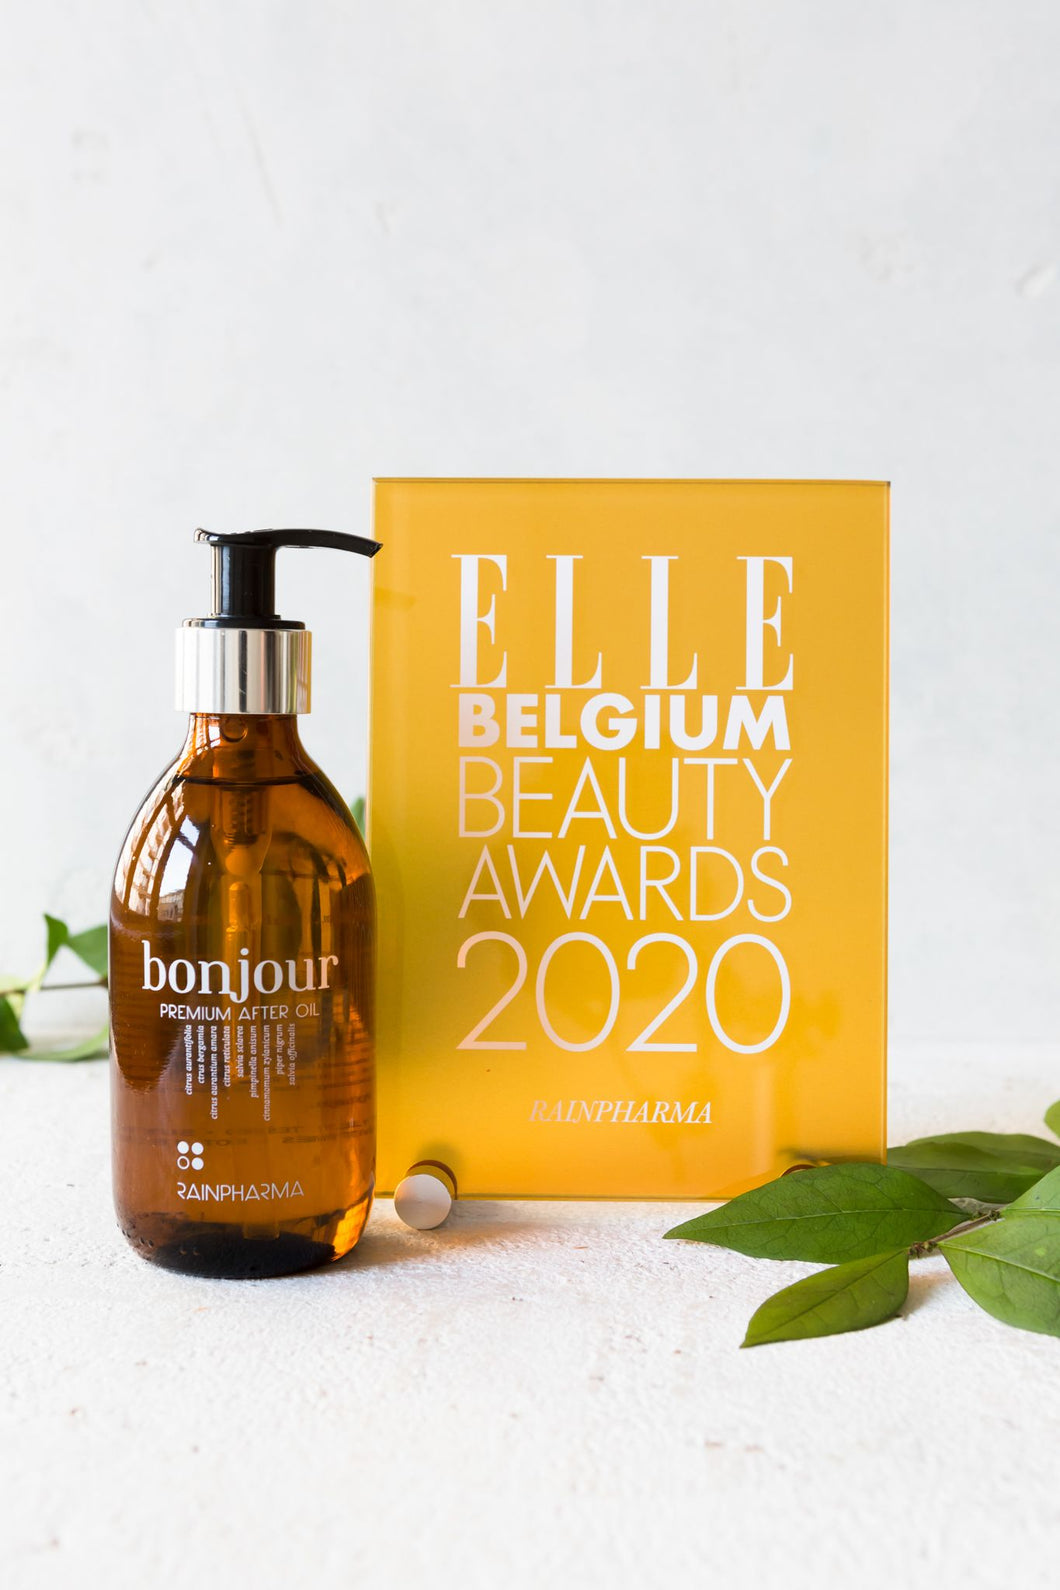 Bonjour Premium After Oil 250ml